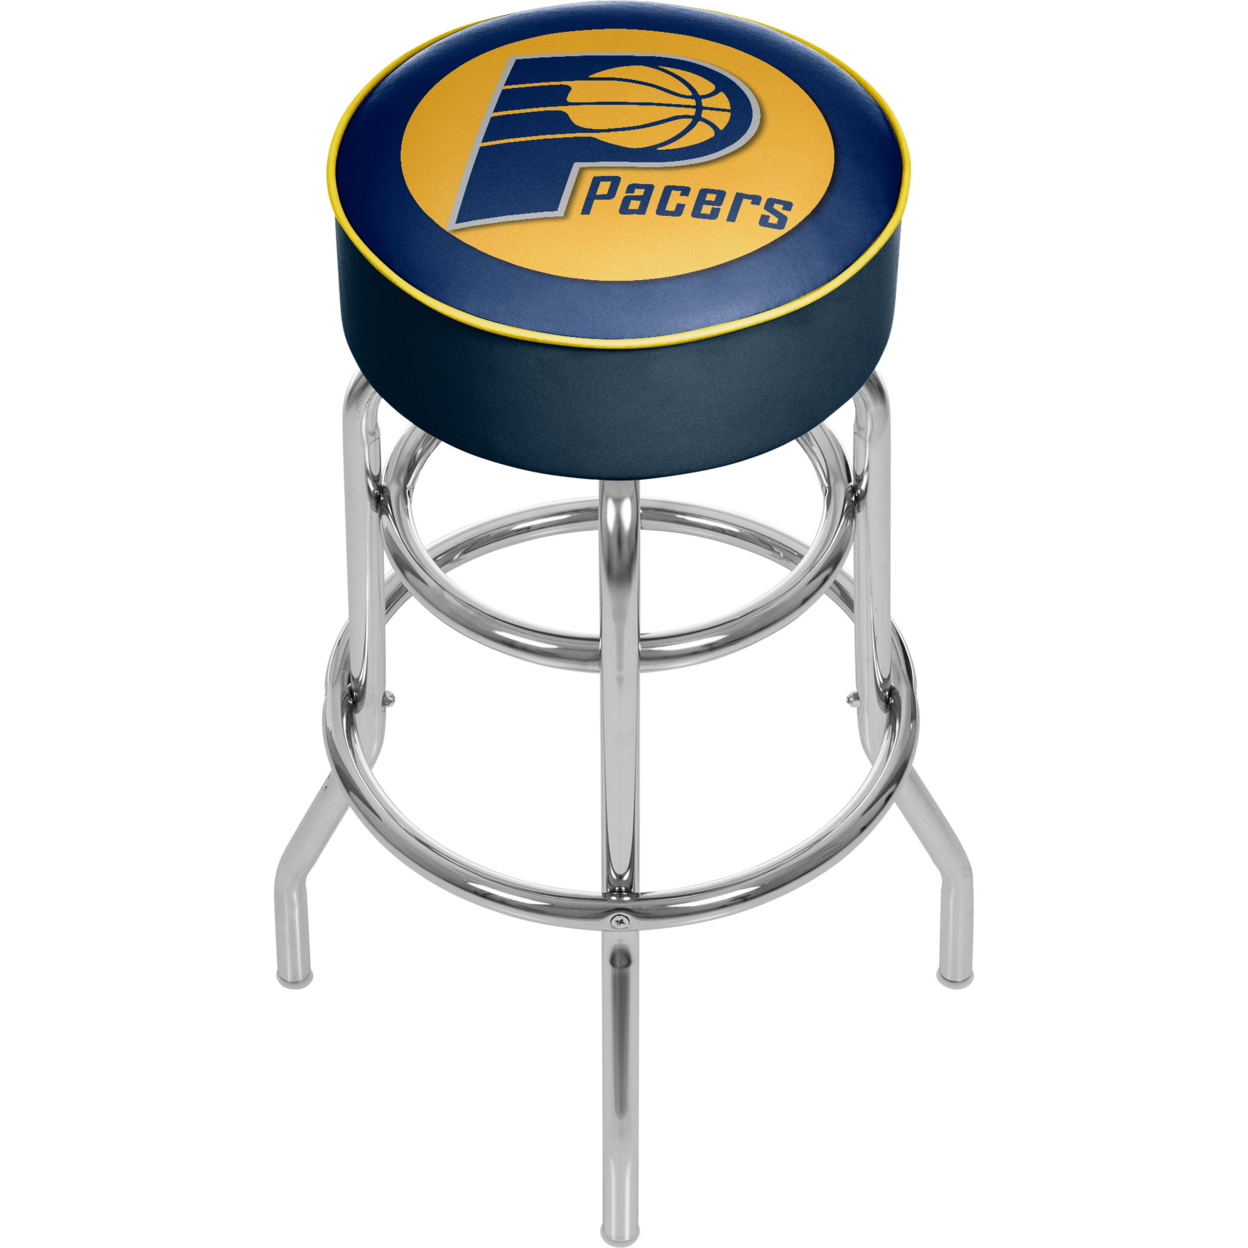 Indiana Pacers NBA Padded Swivel Bar Stool 30 Inches High фанатская атрибутика nike curry nba